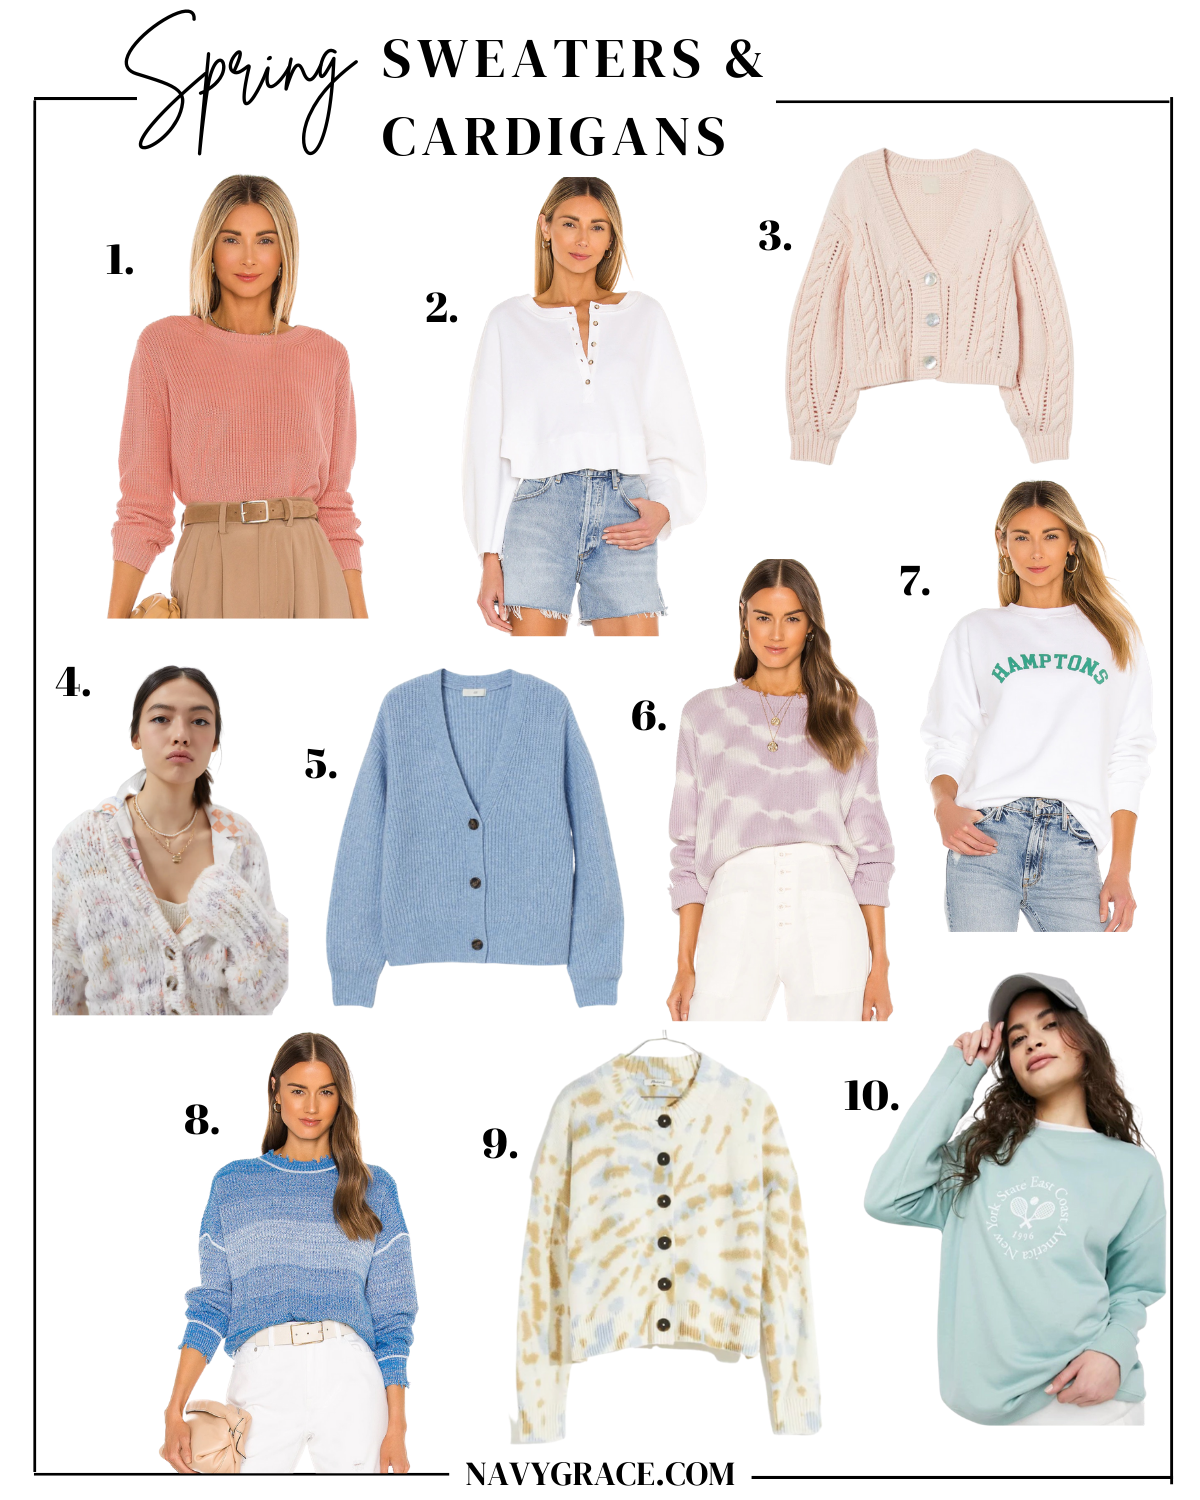 sweaters & Cardigans for spring